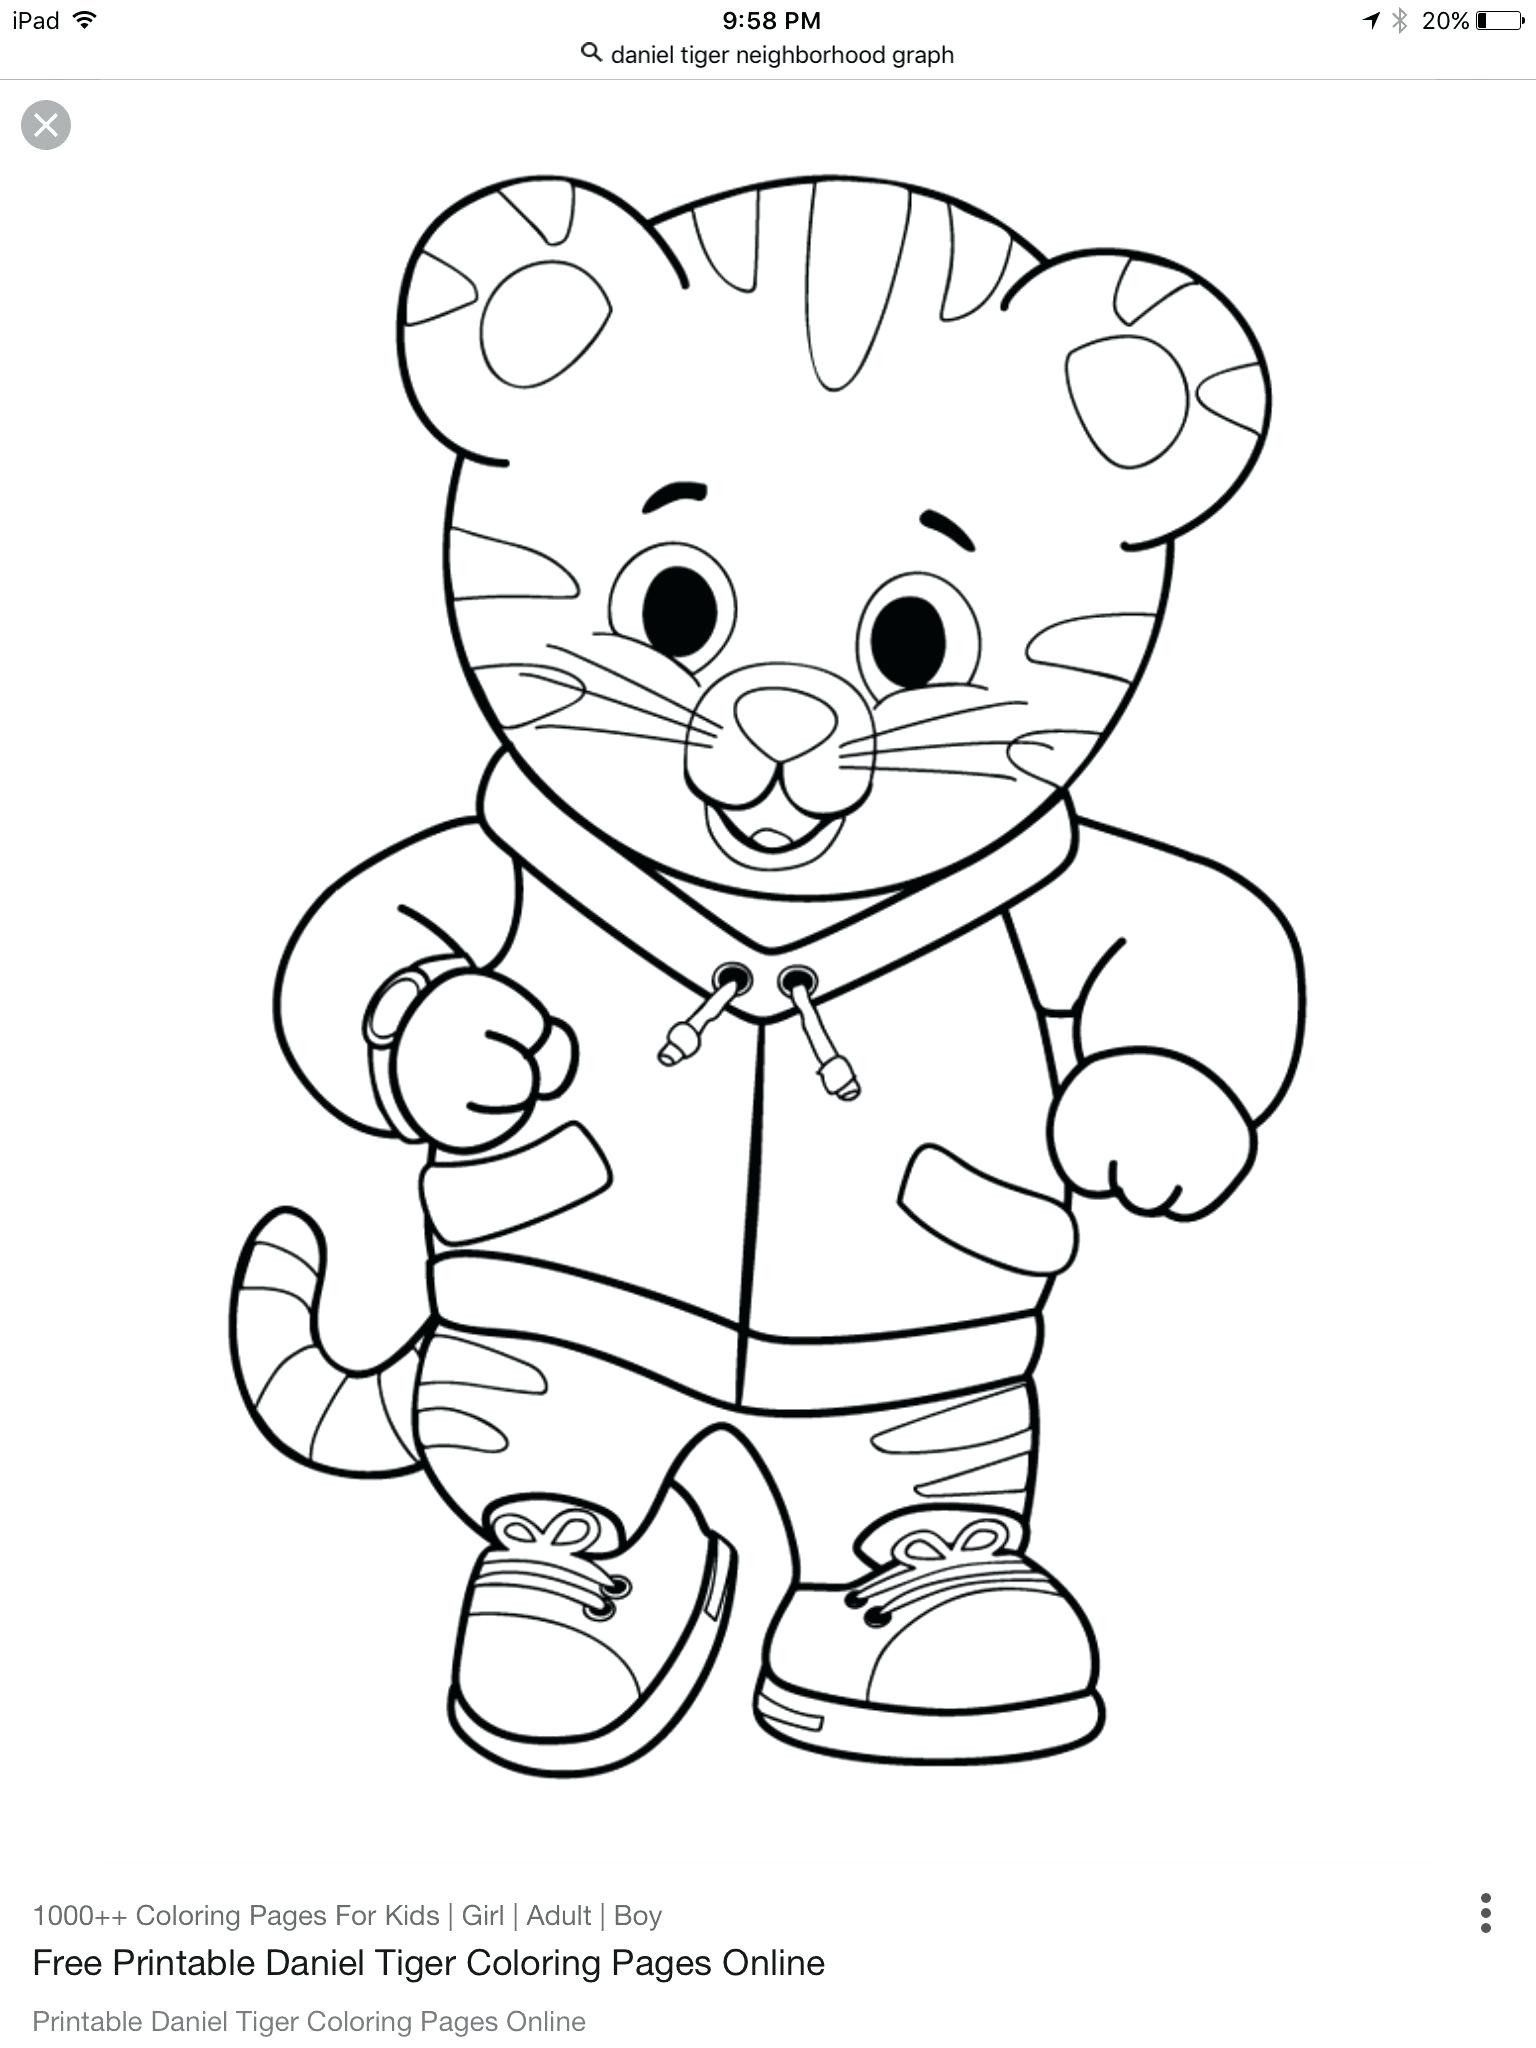 Daniel Tiger Coloring Pages Awesome Dear Daniel Coloring Pages Tedpaper Daniel Tiger Daniel Tiger Birthday Daniel Tiger Party